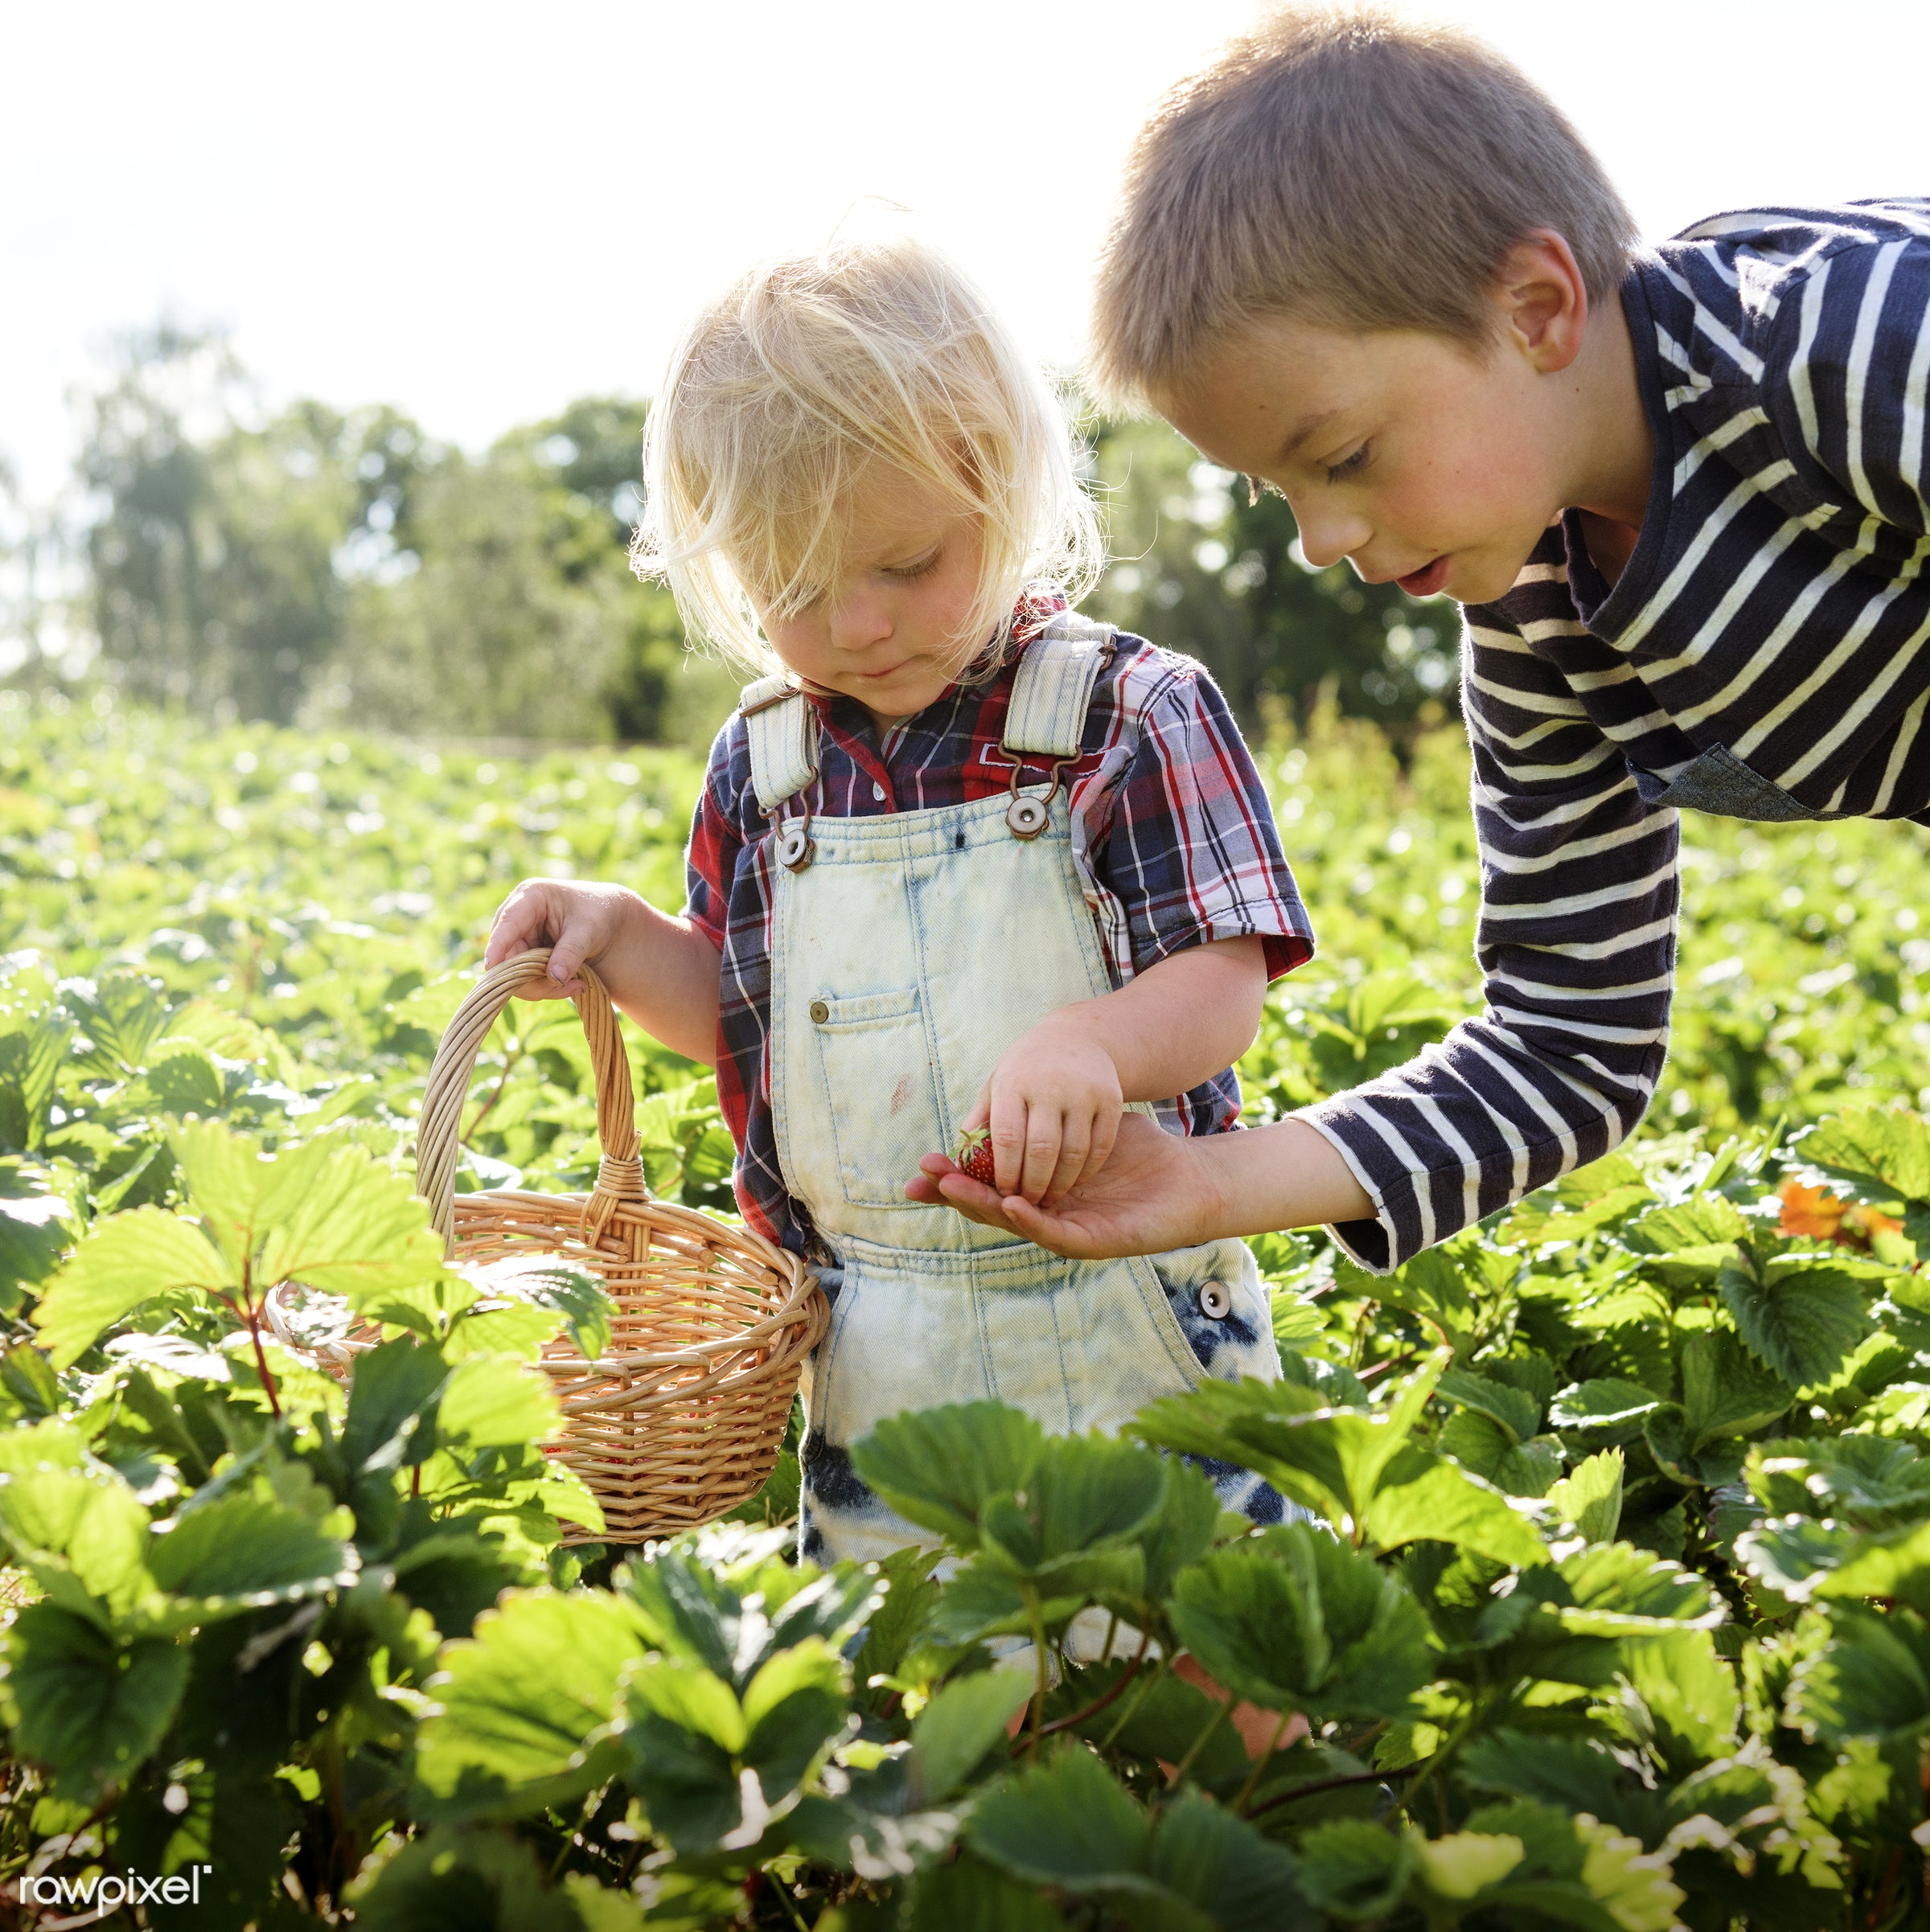 Kids in strawberry farm - backyard, botany, boys, brother, caucasian, children, countryside, cultivate, farm, field, fresh,...